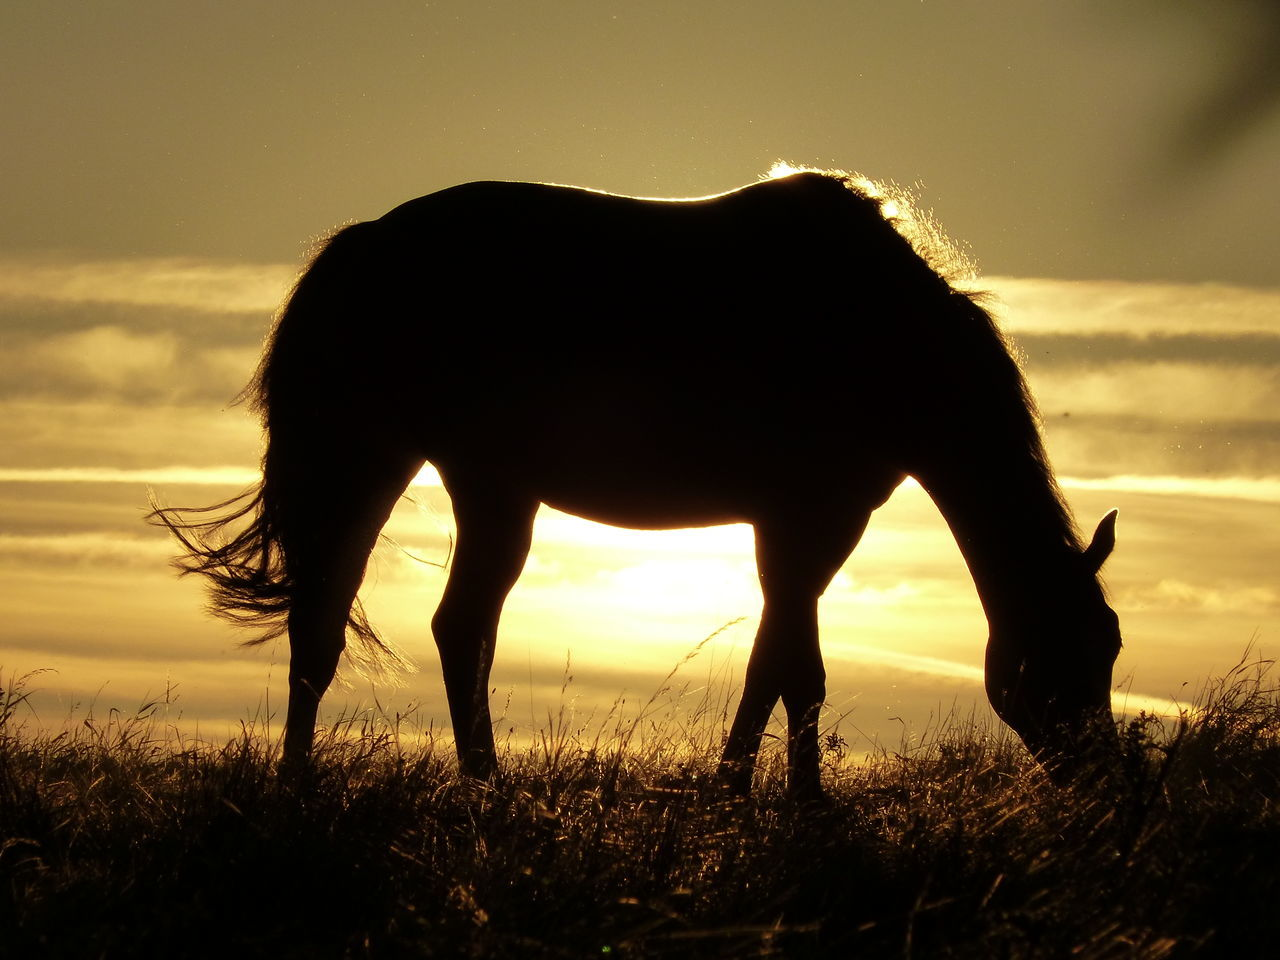 Silhouette Horse Against Sky During Sunset